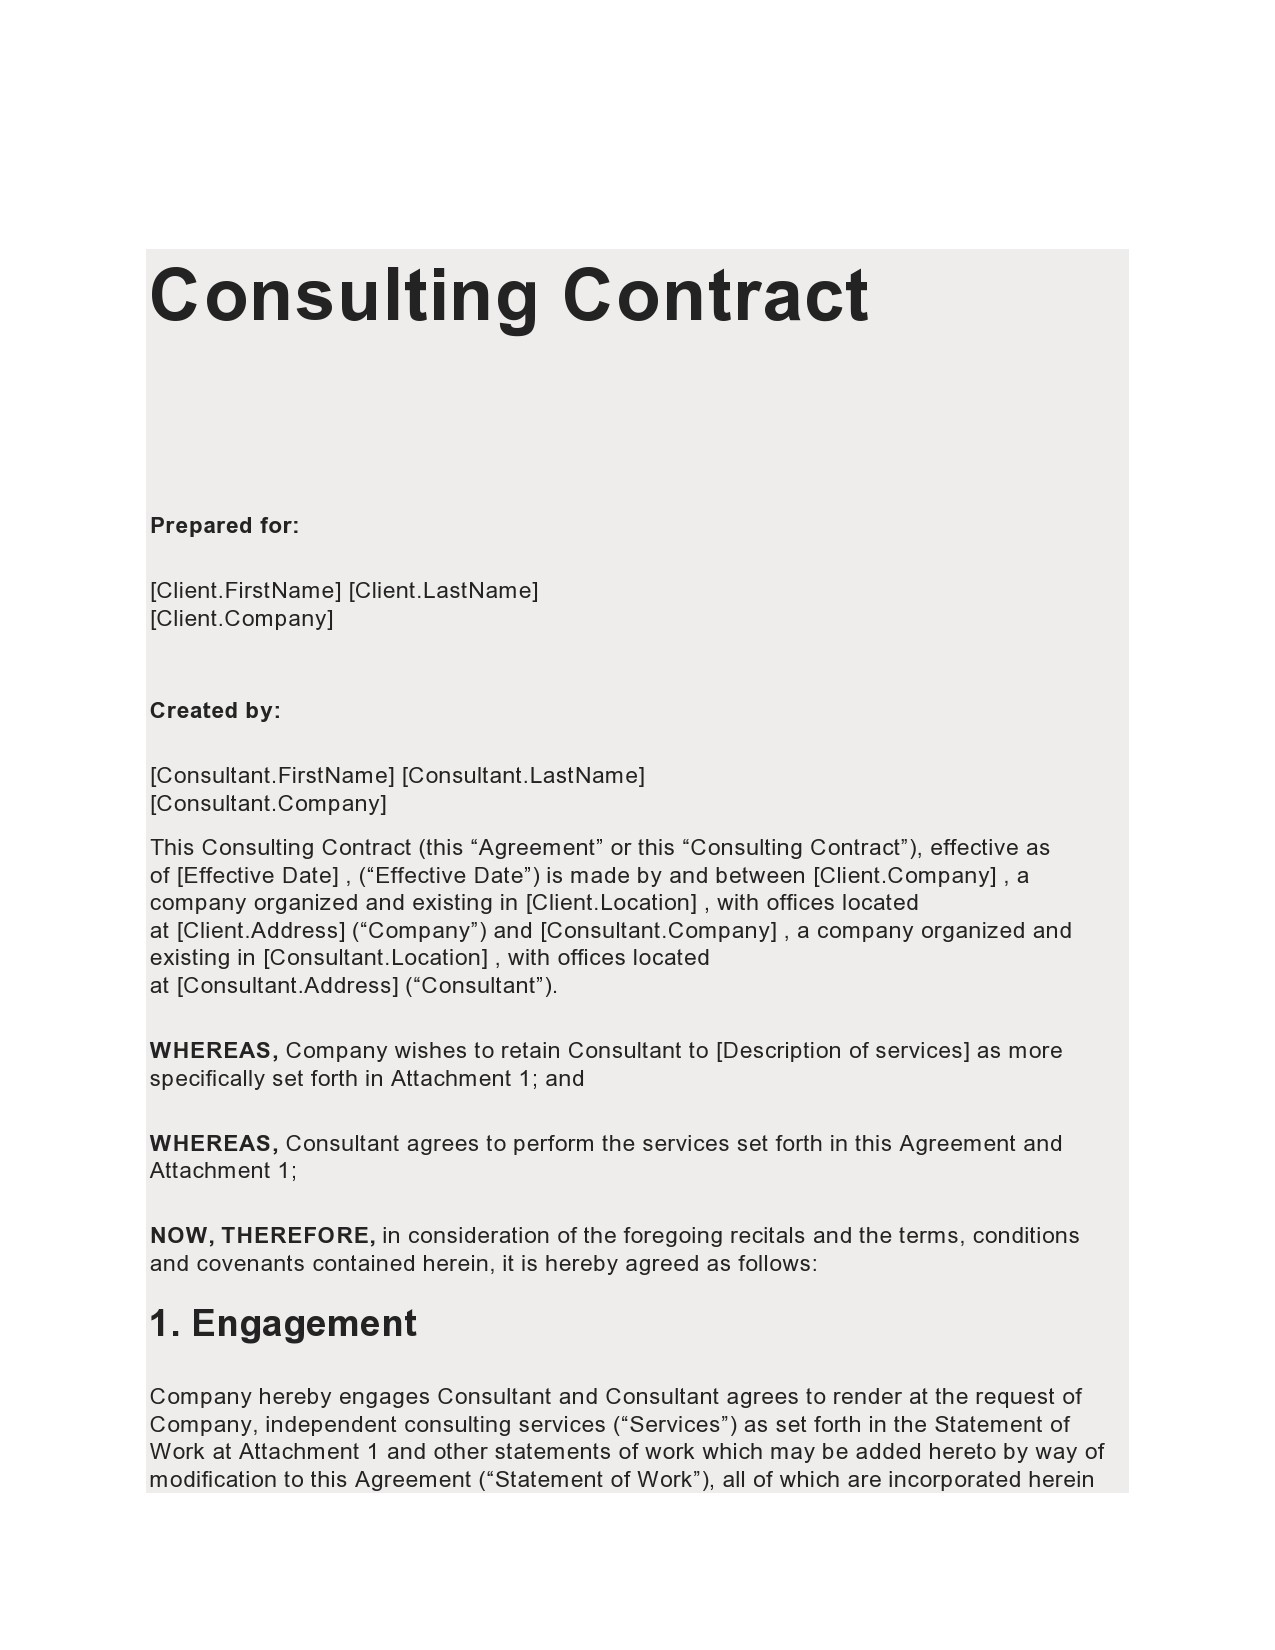 Free consulting contract template 01